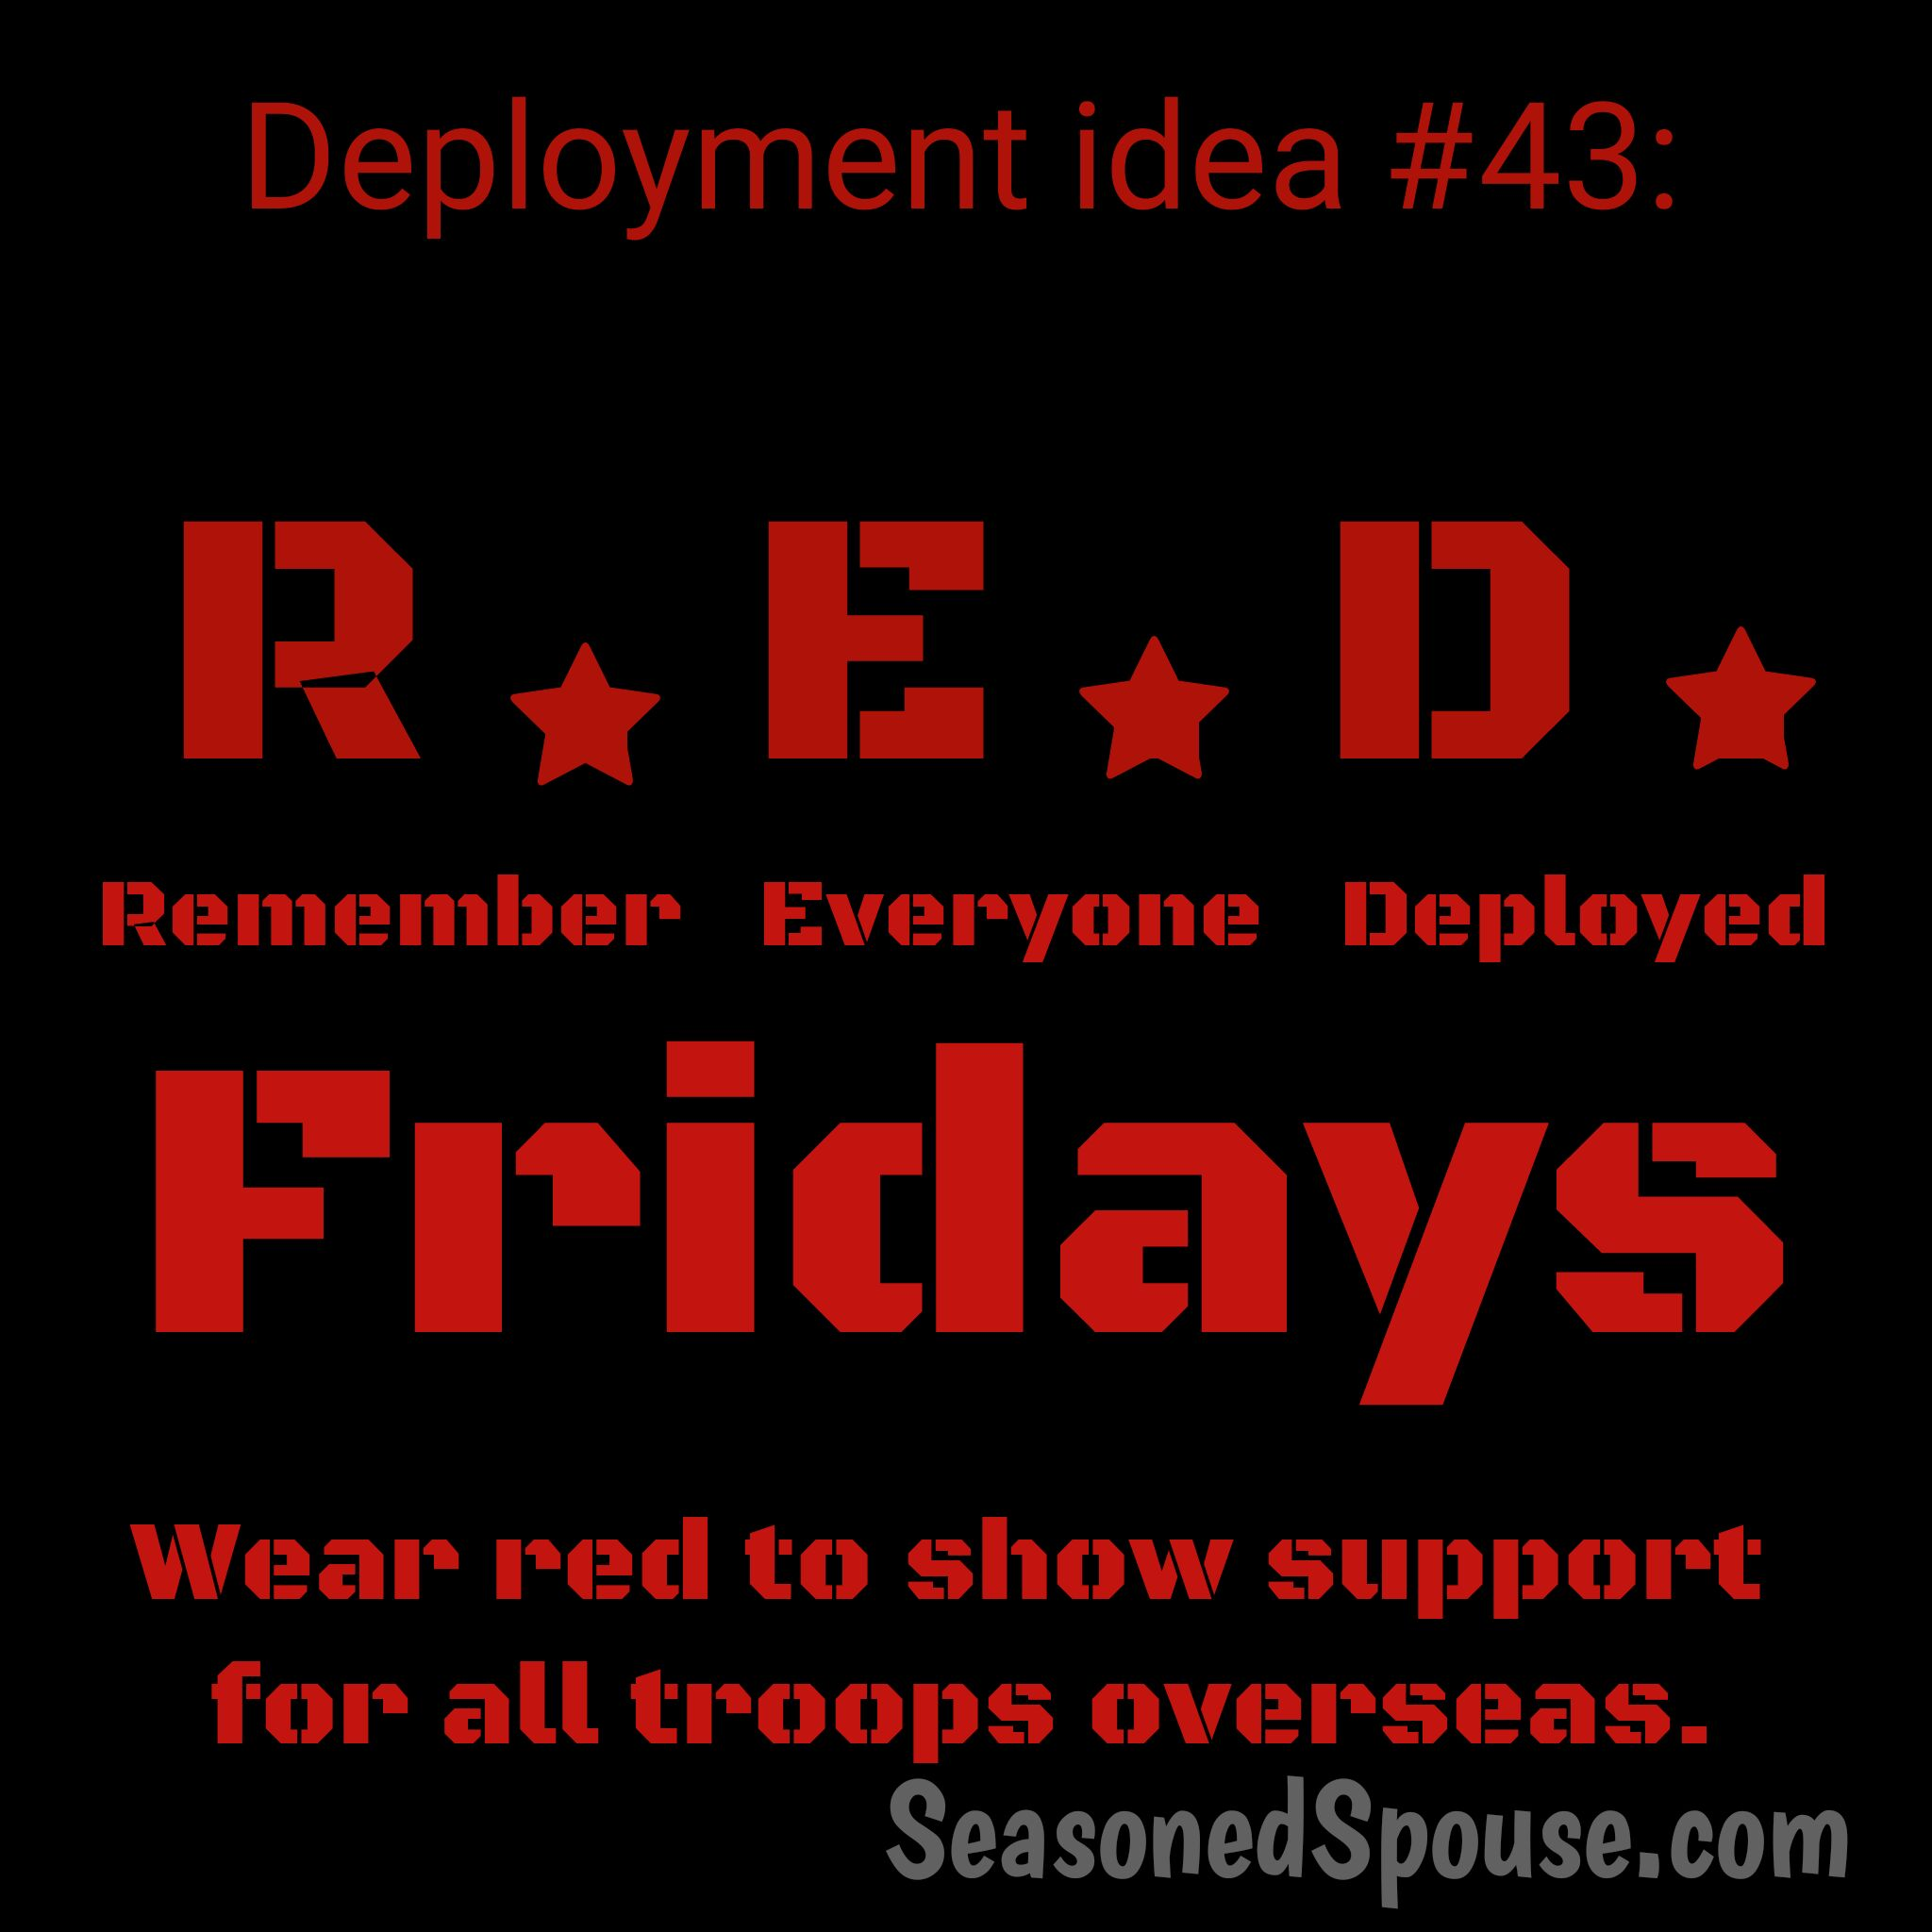 What are R.E.D. Fridays for a military deployment? Will you wear red to show that you support the military?